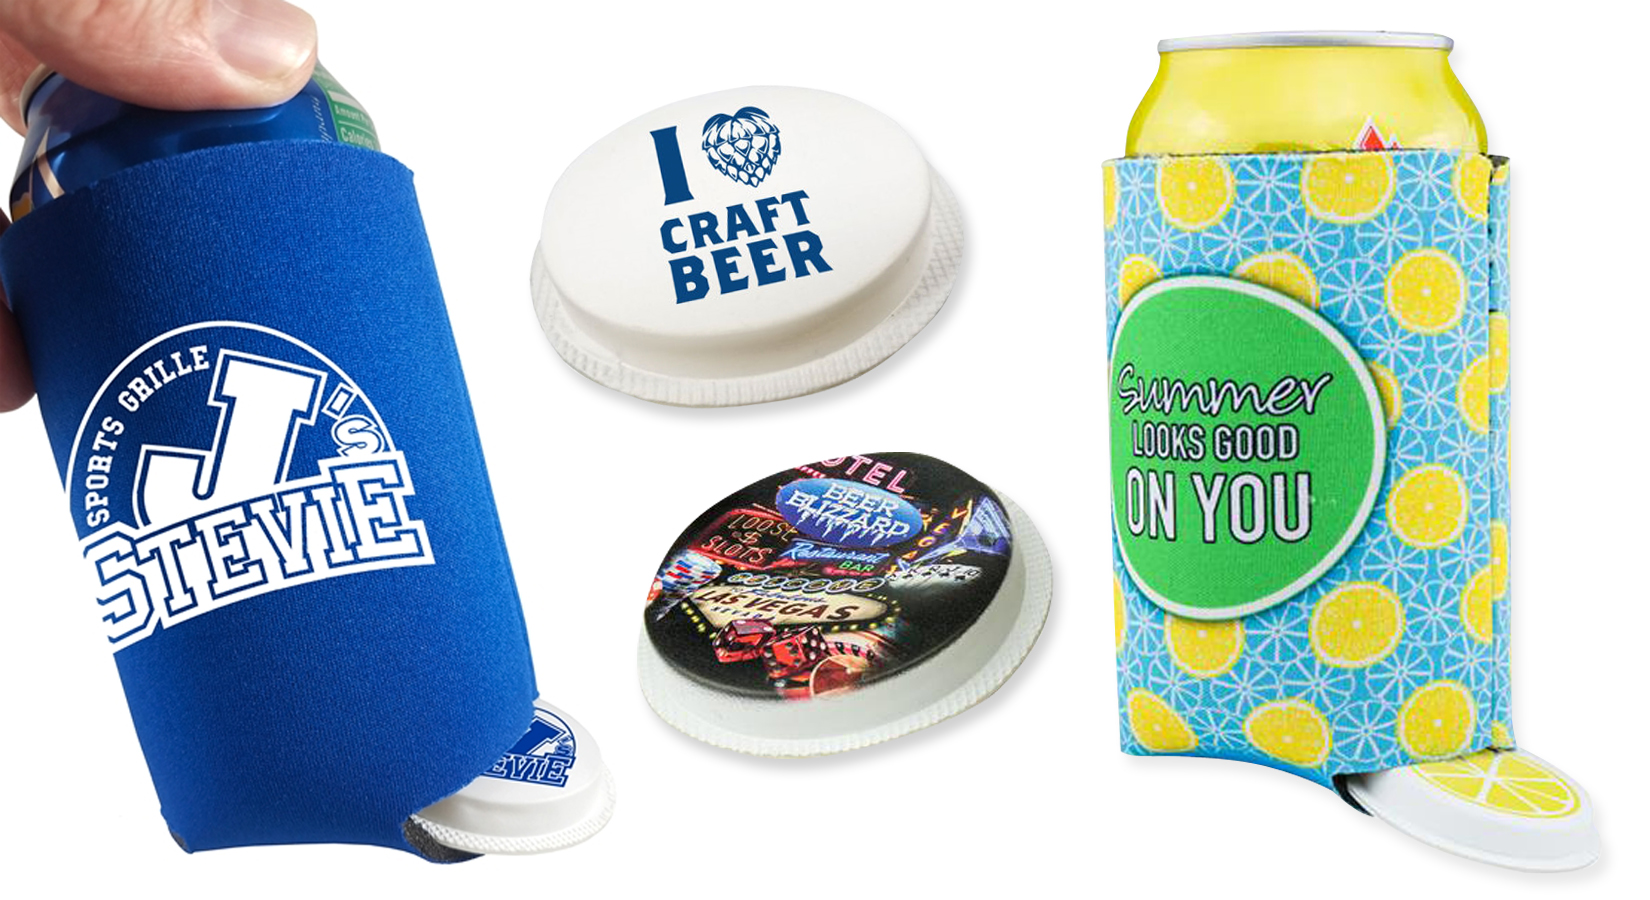 Introducing The Beer Blizzard – As Seen On Shark Tank!